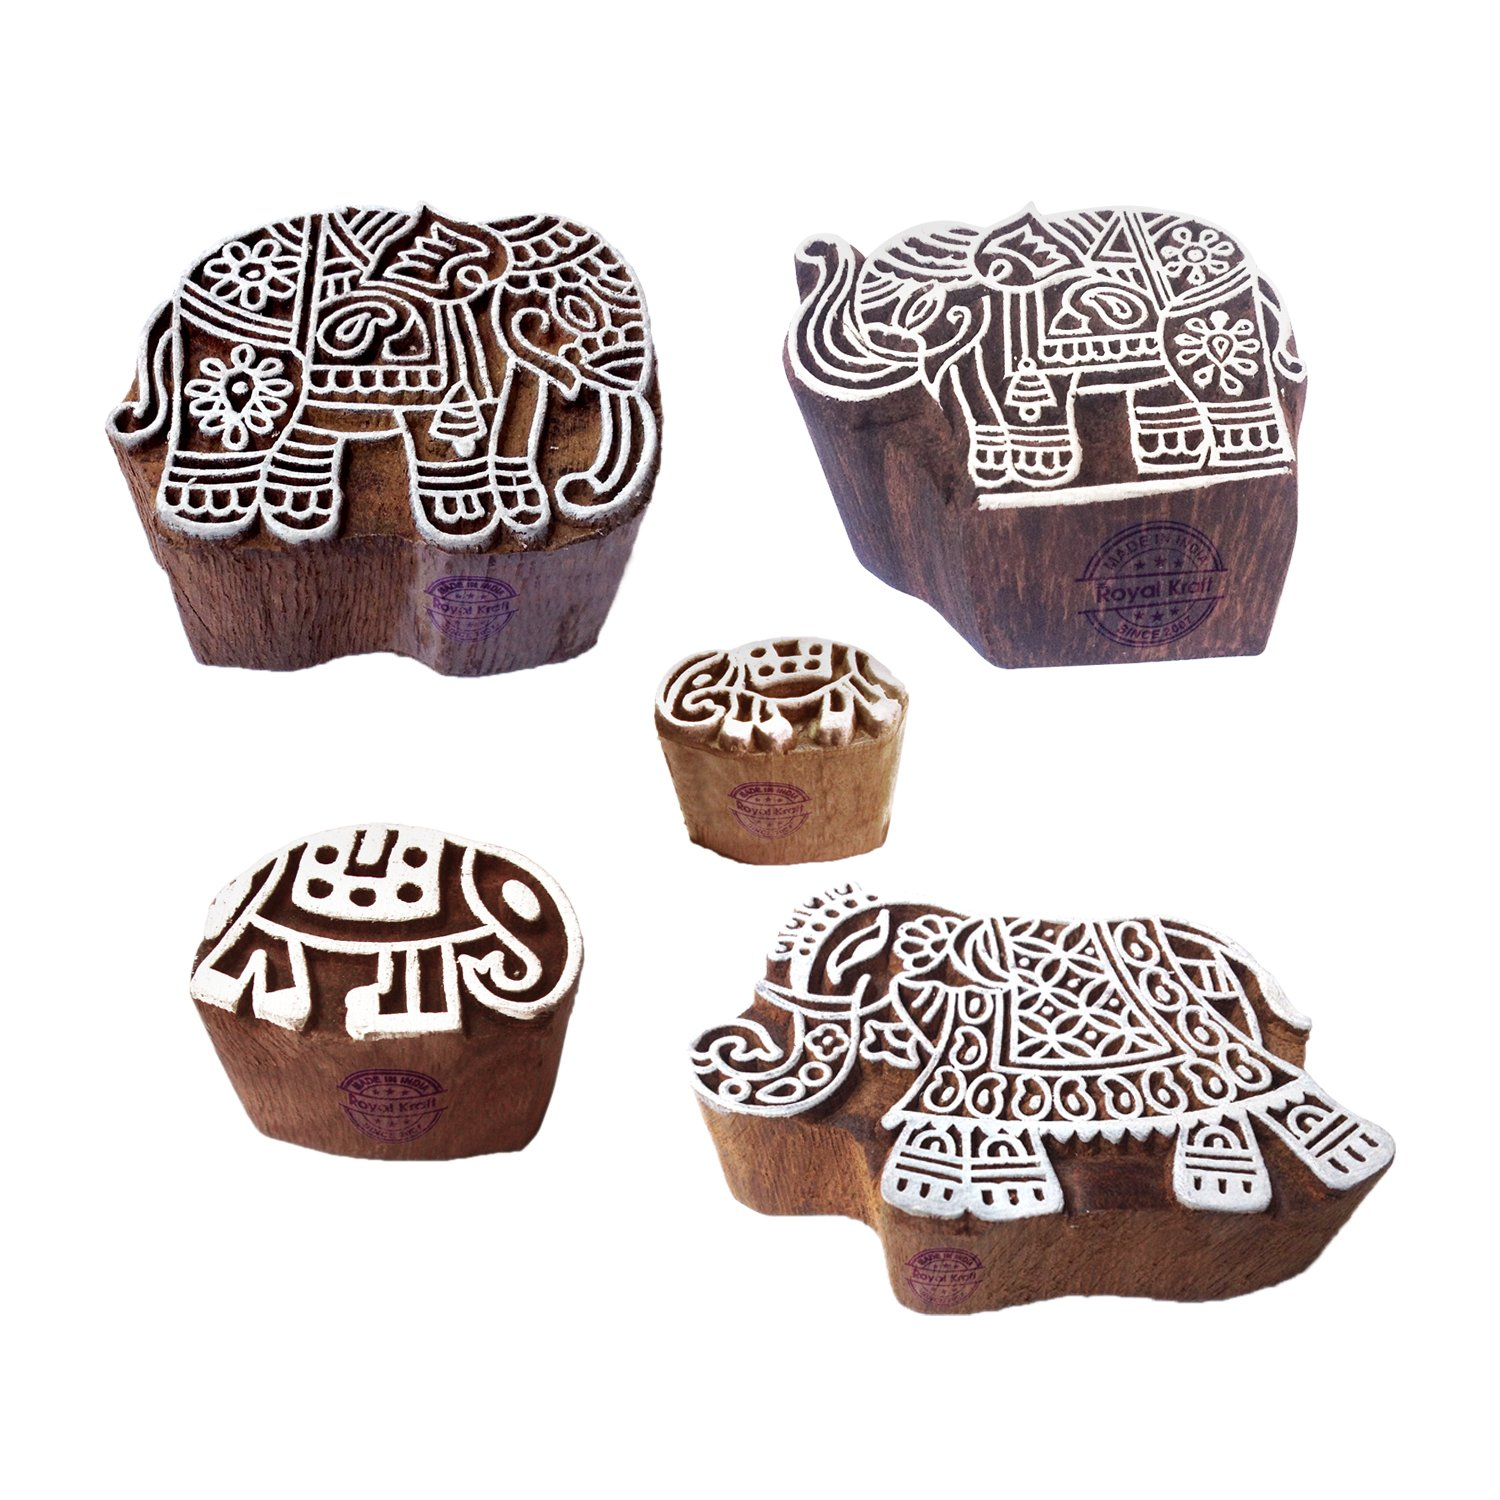 Retro Shapes Mix and Elephant Wood Block Print Stamps (Set of 5)